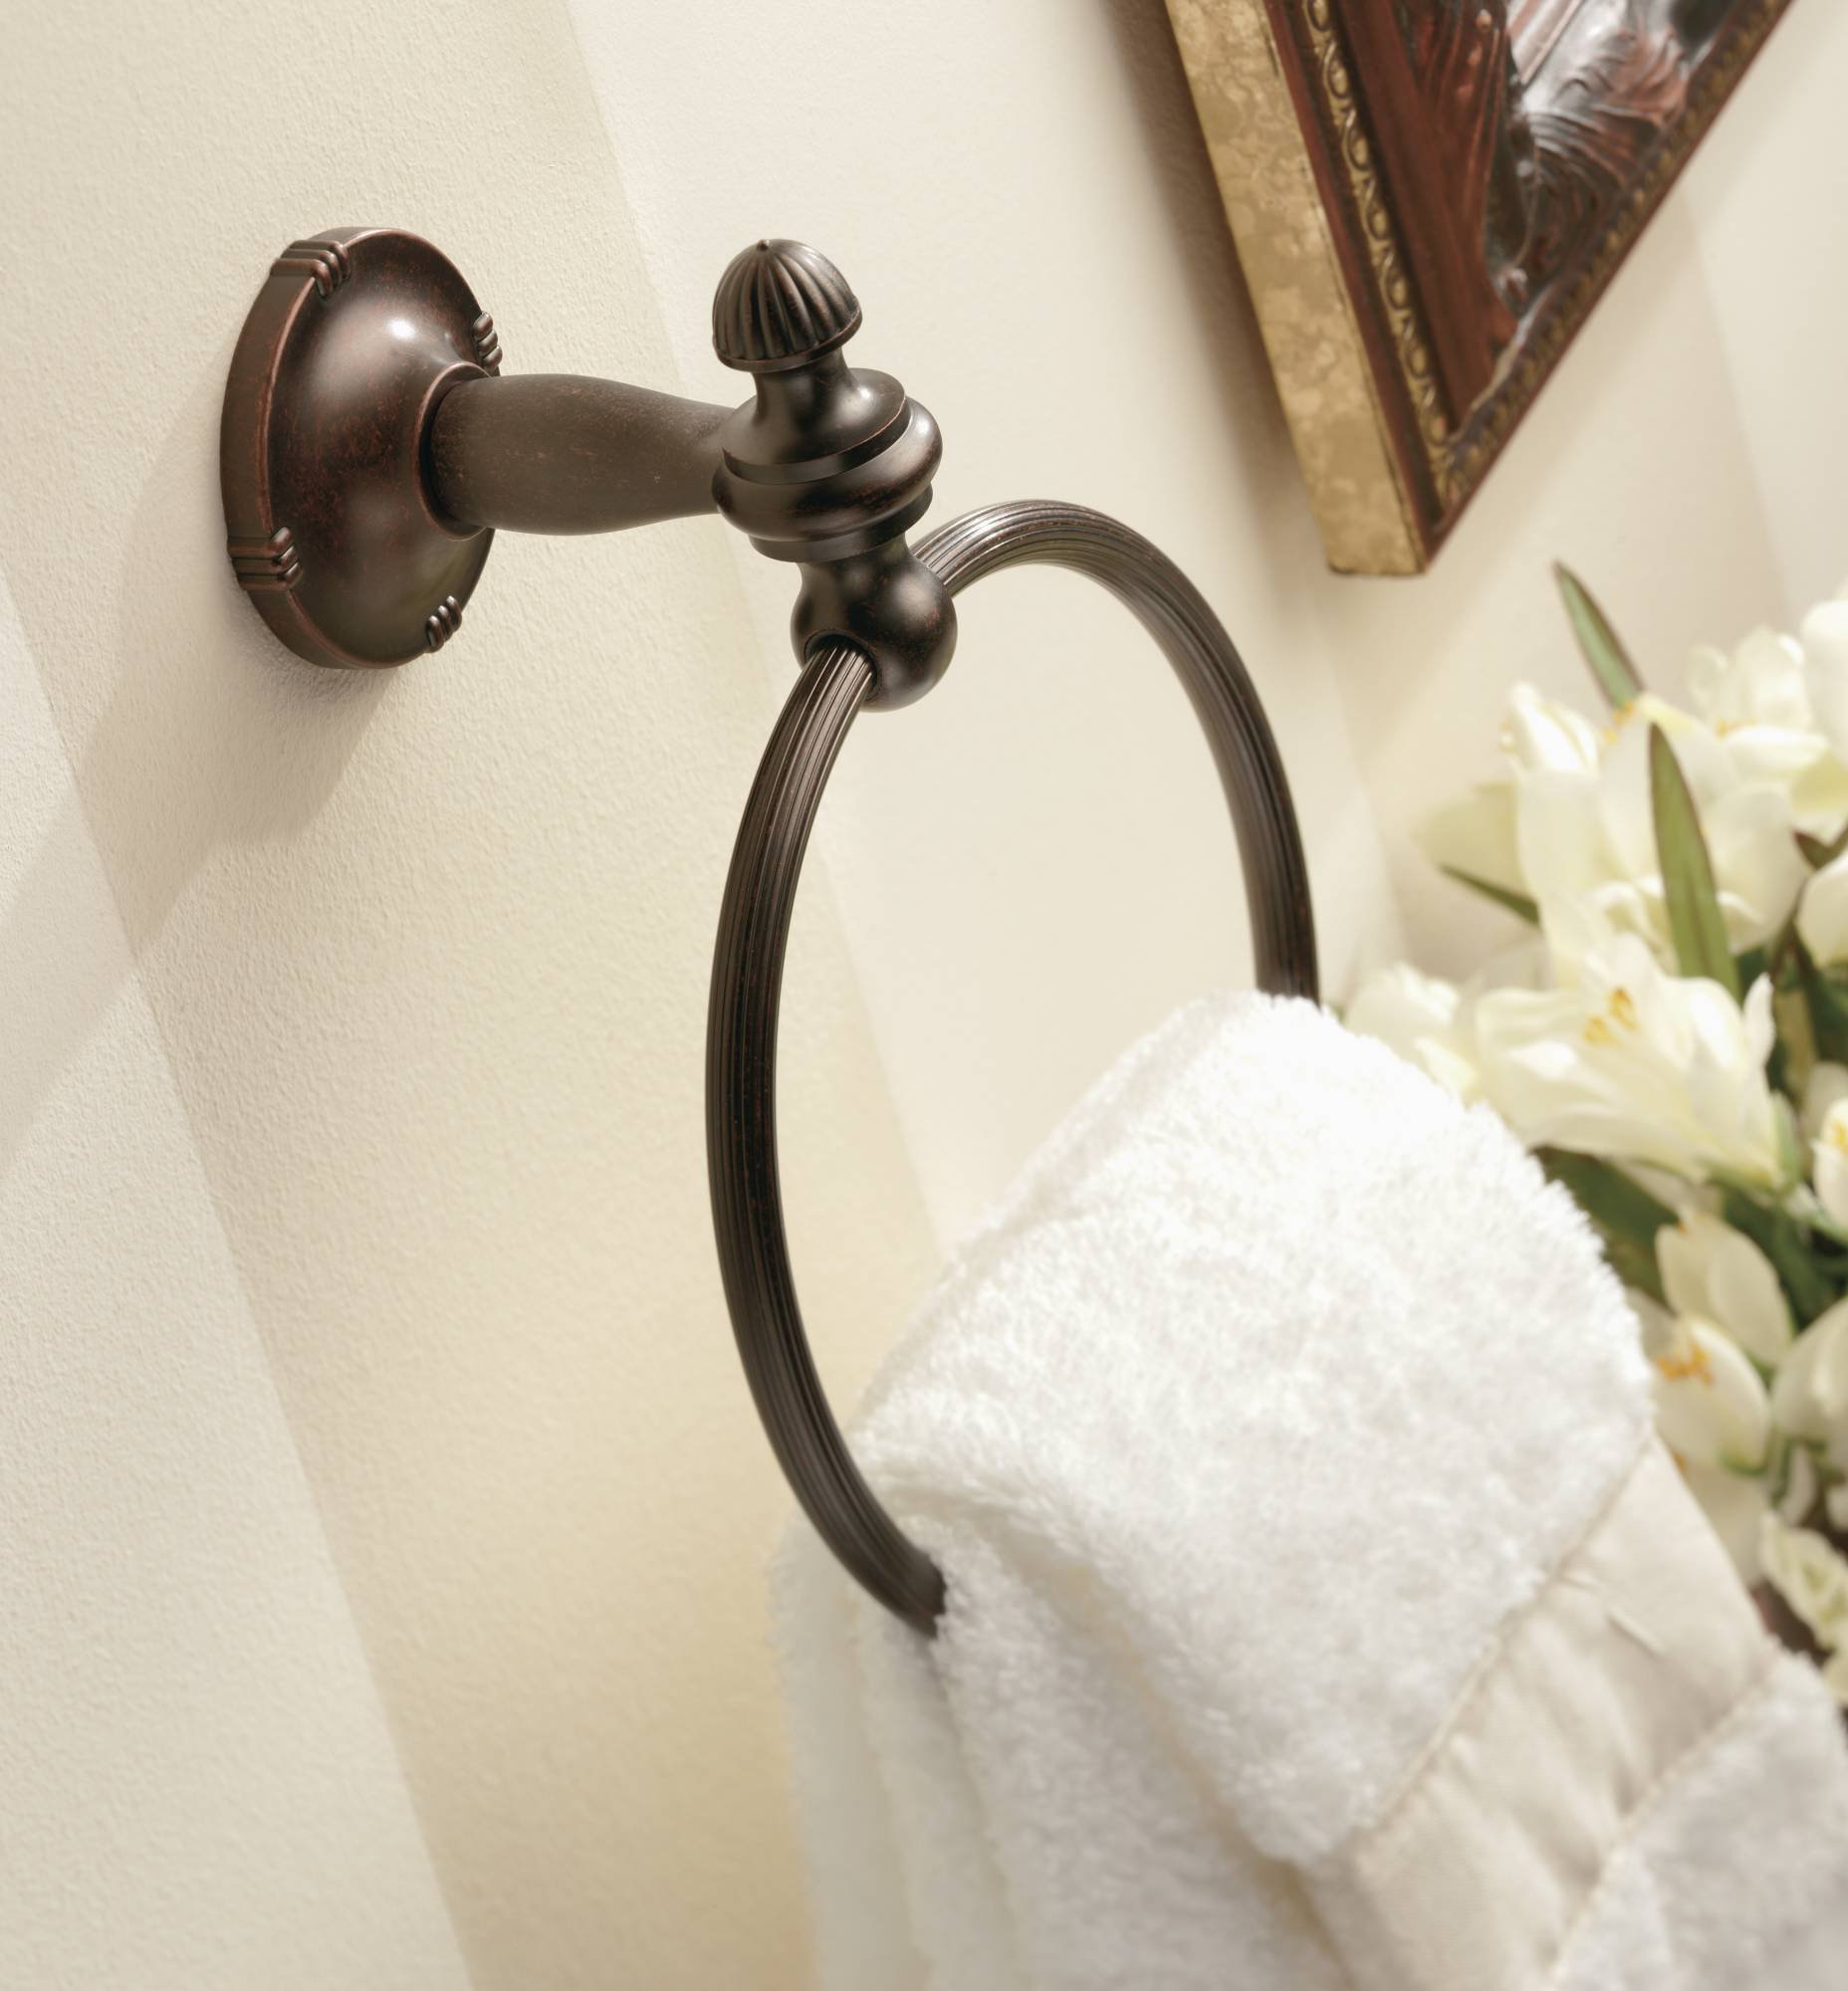 Moen DN0886ORB Gilcrest Towel Ring, Oil Rubbed Bronze